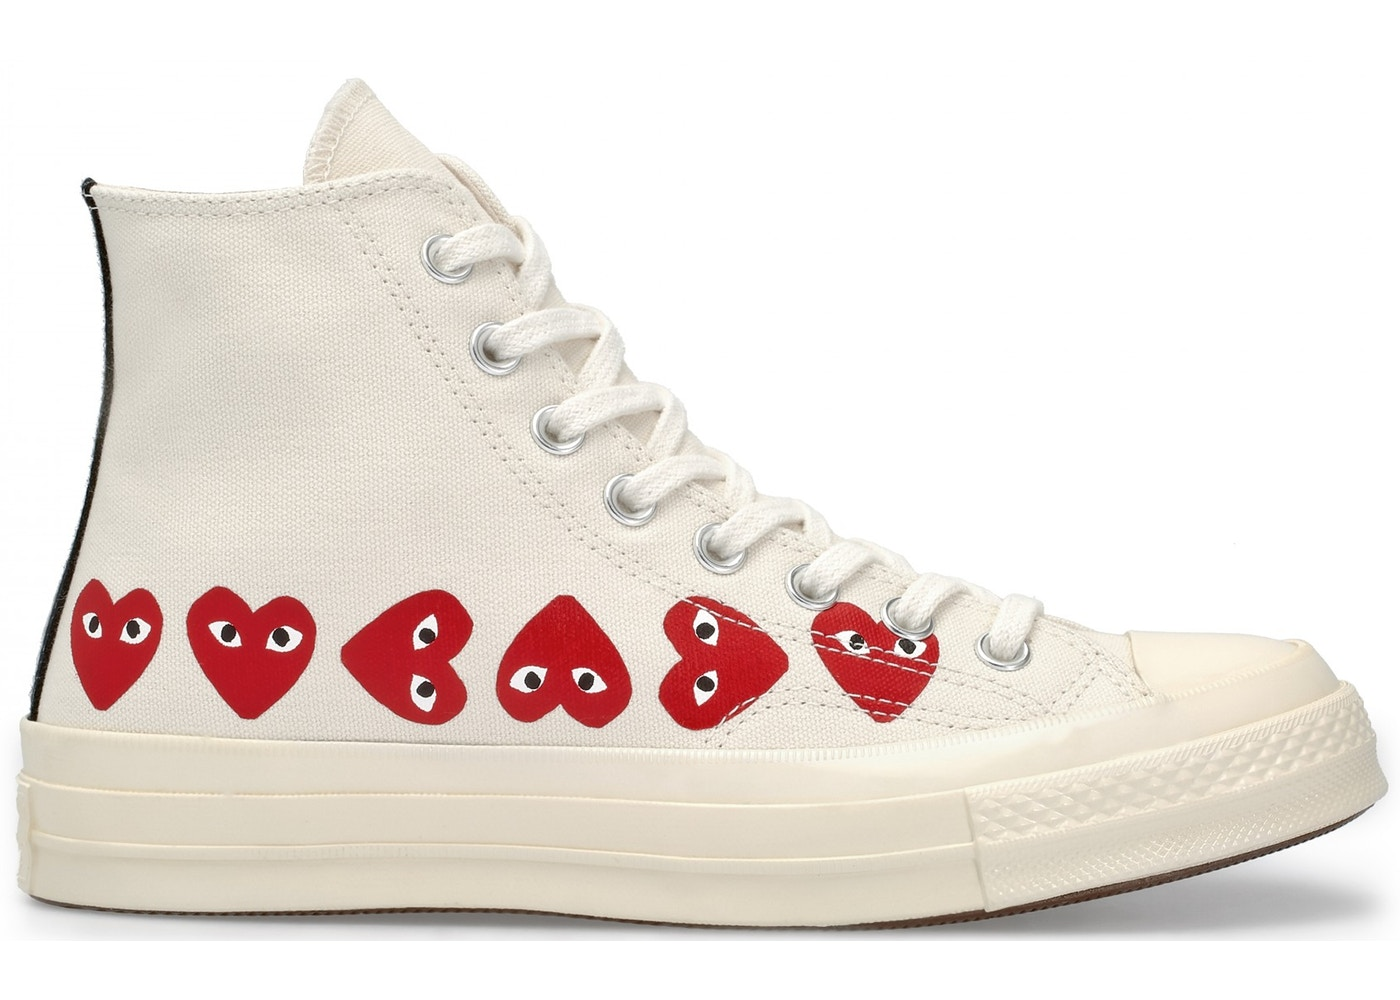 bde530d8231 Converse Chuck Taylor All-Star 70s Hi Comme des Garcons Play Multi-Heart  White